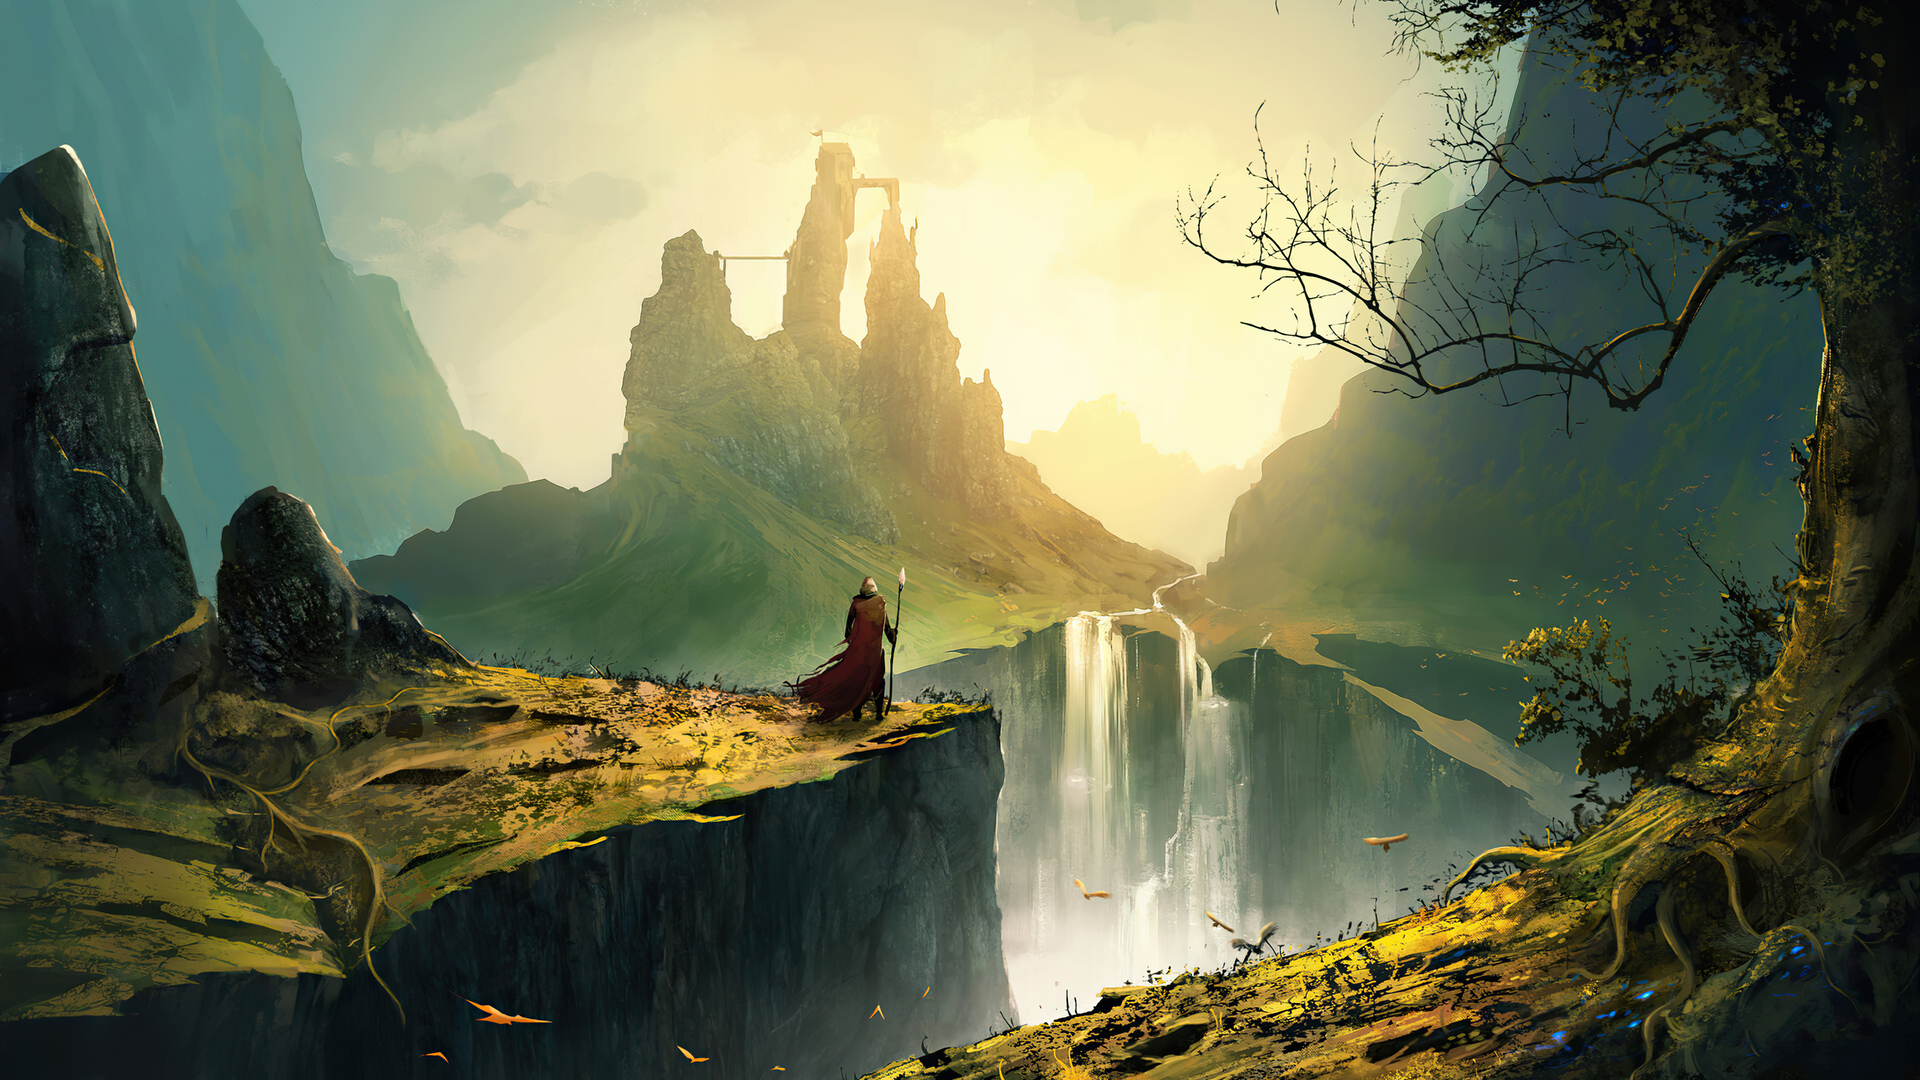 1920x1080 Wizard Kingdom 4k Laptop Full Hd 1080p Hd 4k Wallpapers Images Backgrounds Photos And Pictures